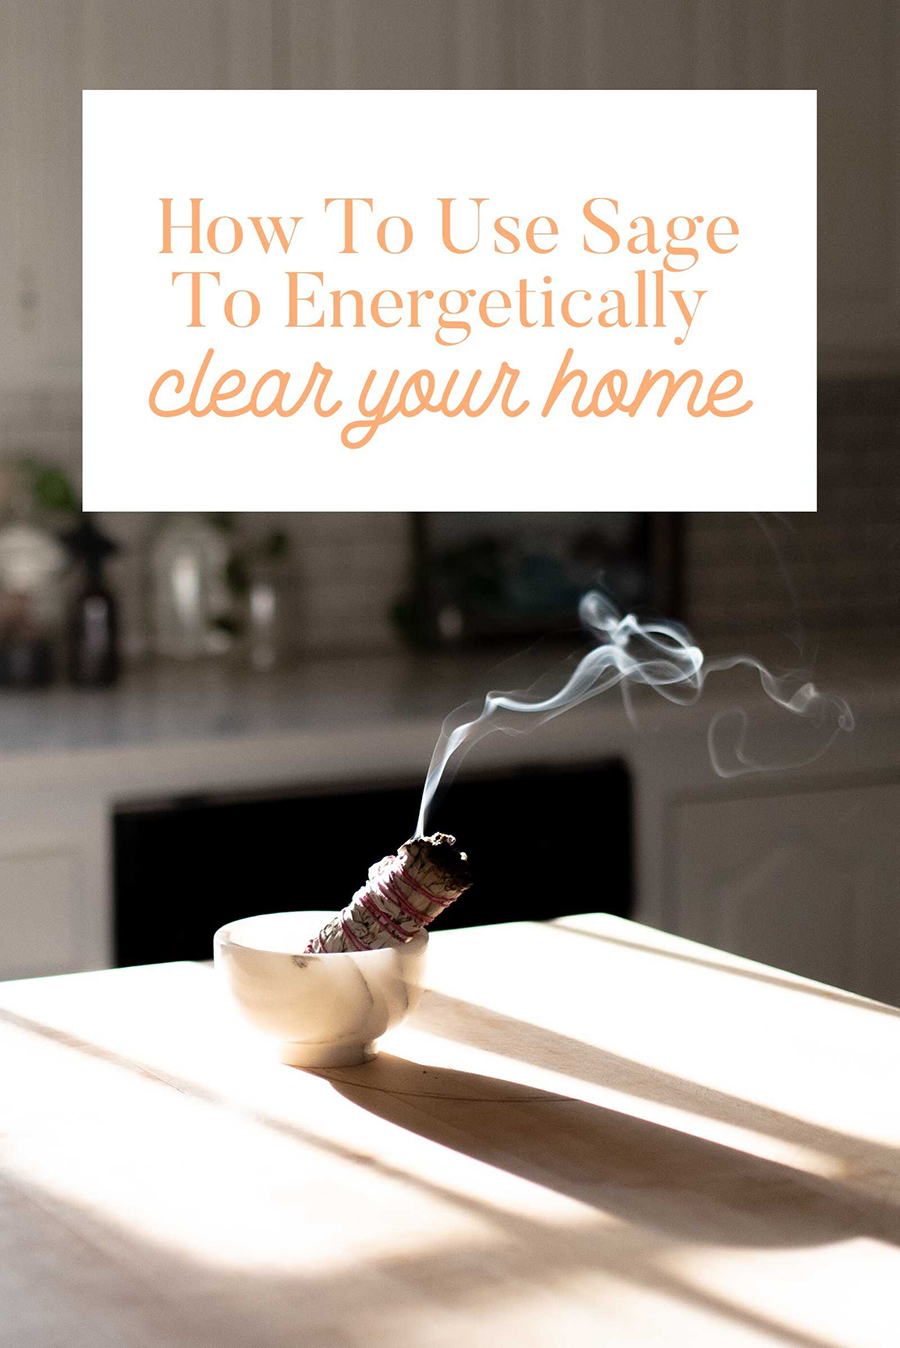 how to use sage to energetically clear your home whimsy and wellness